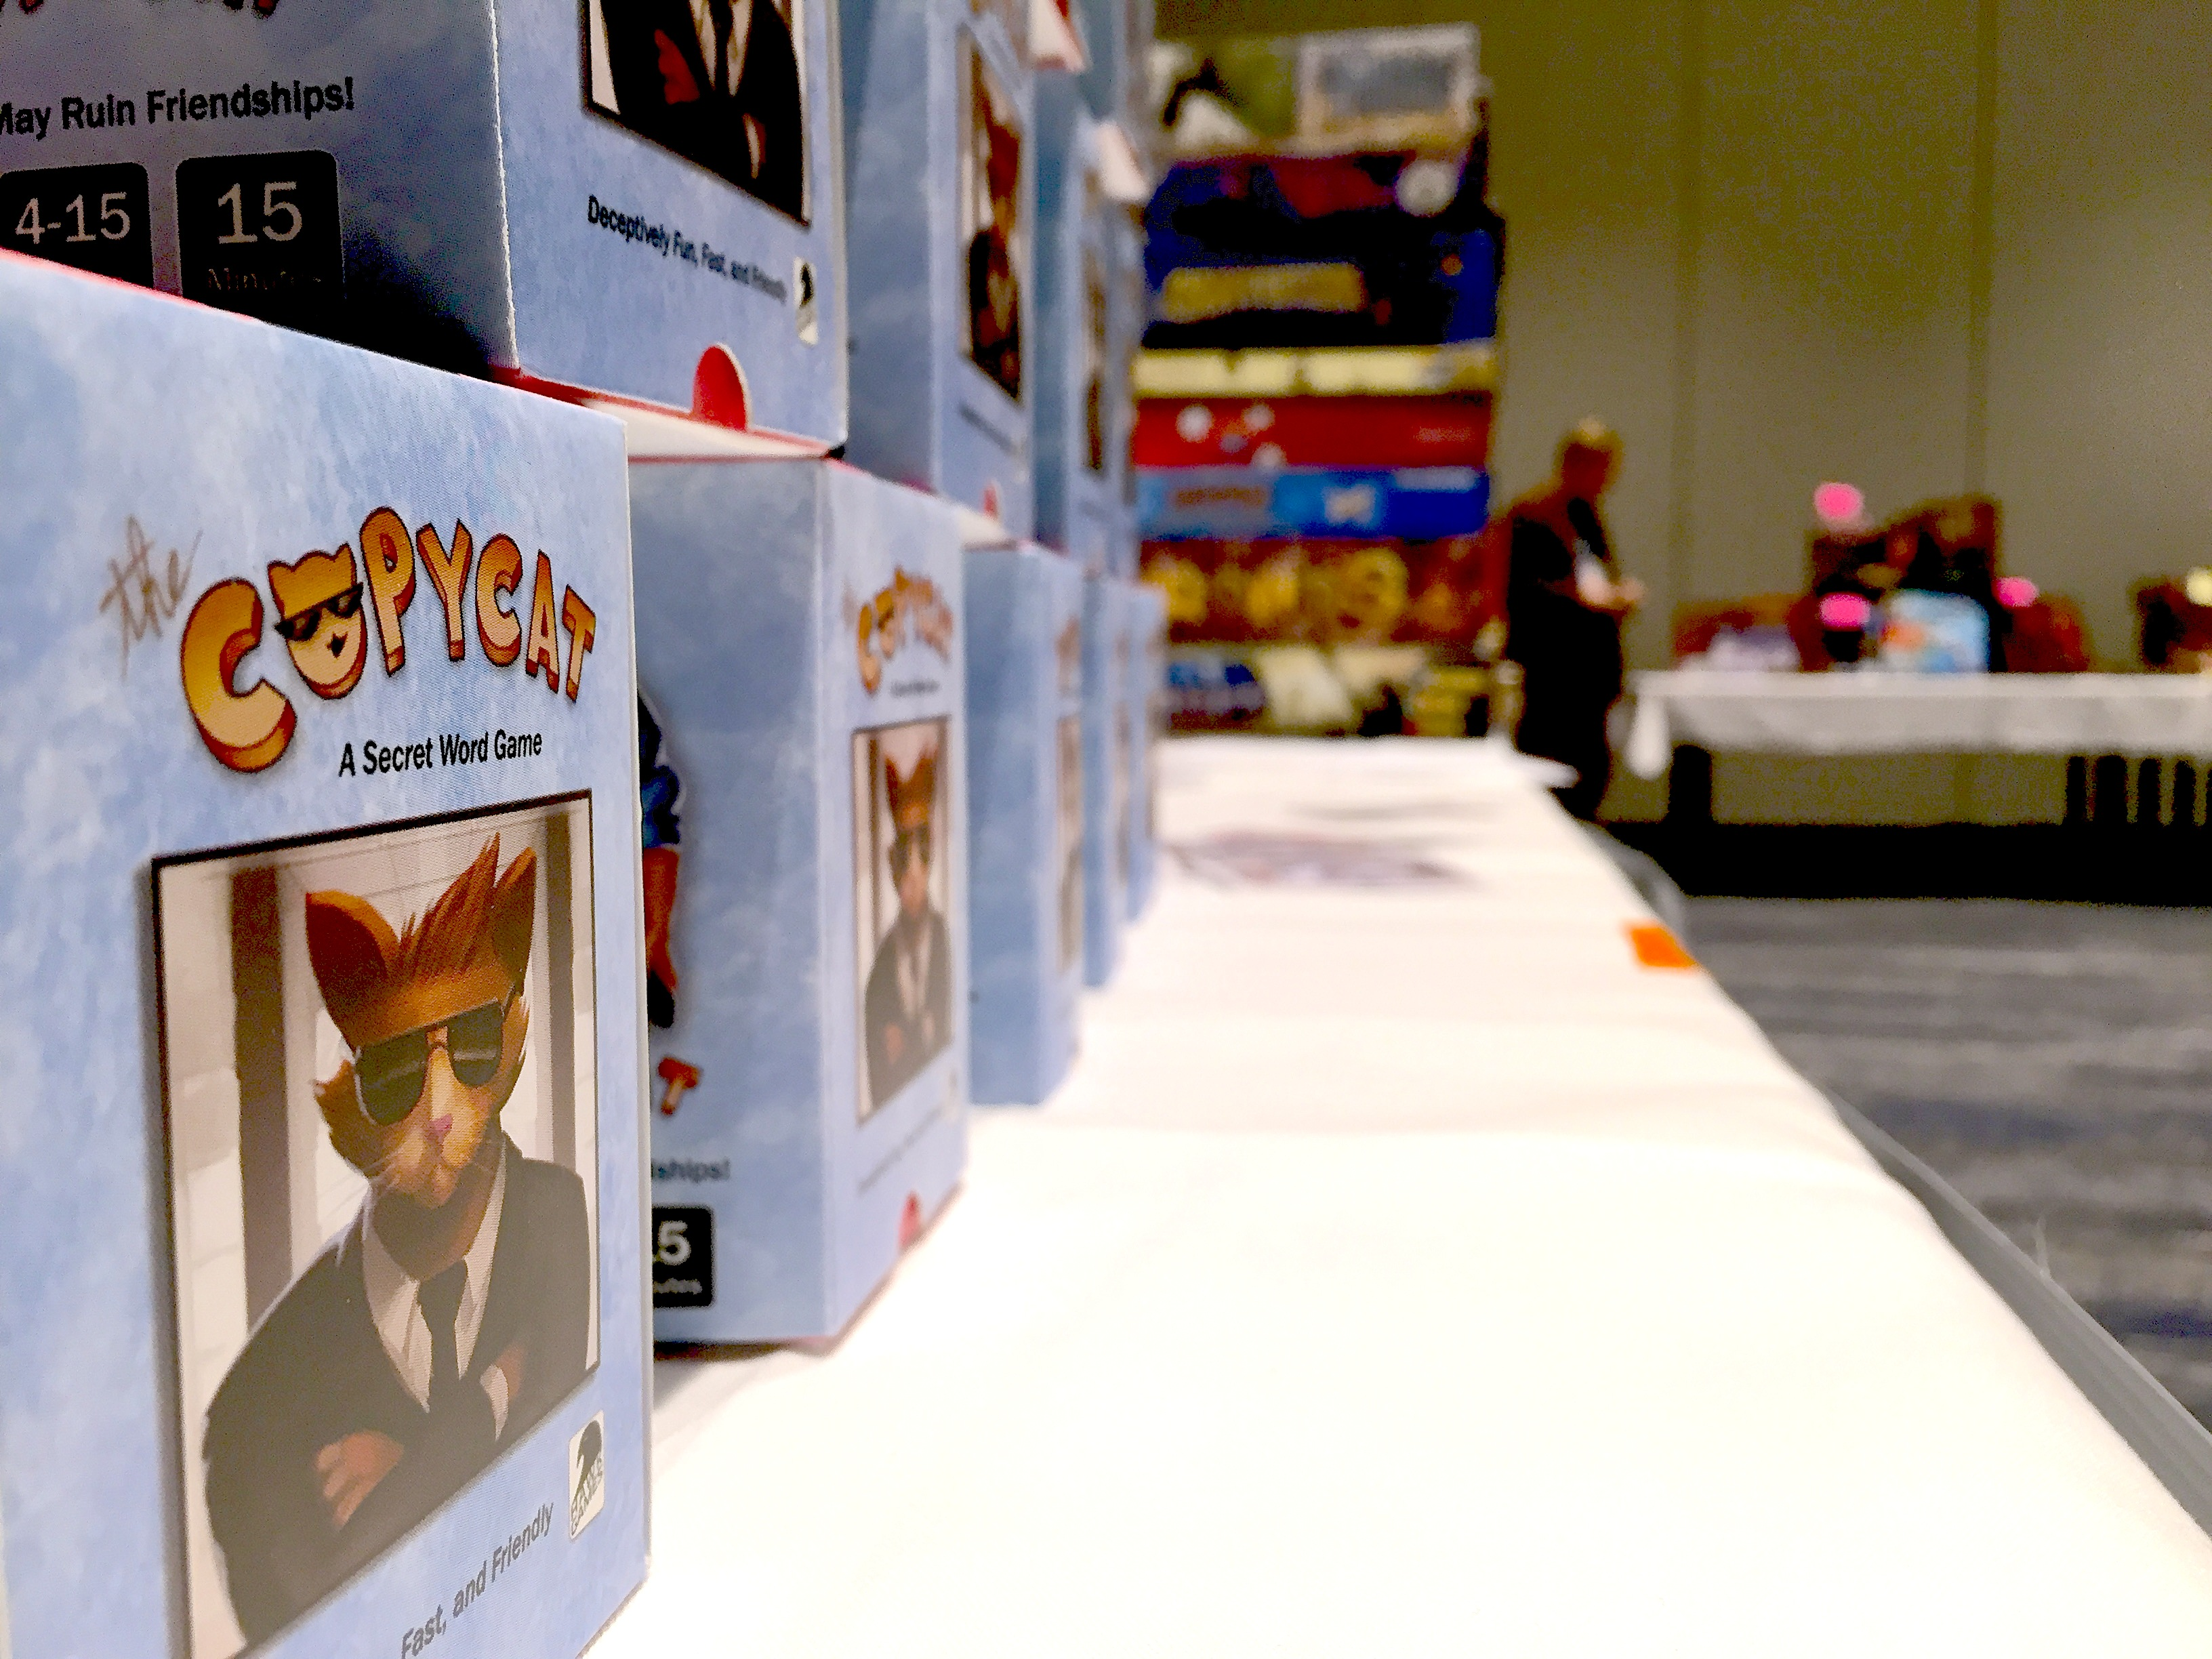 The CopyCat: A Hit At Kublacon 2016!